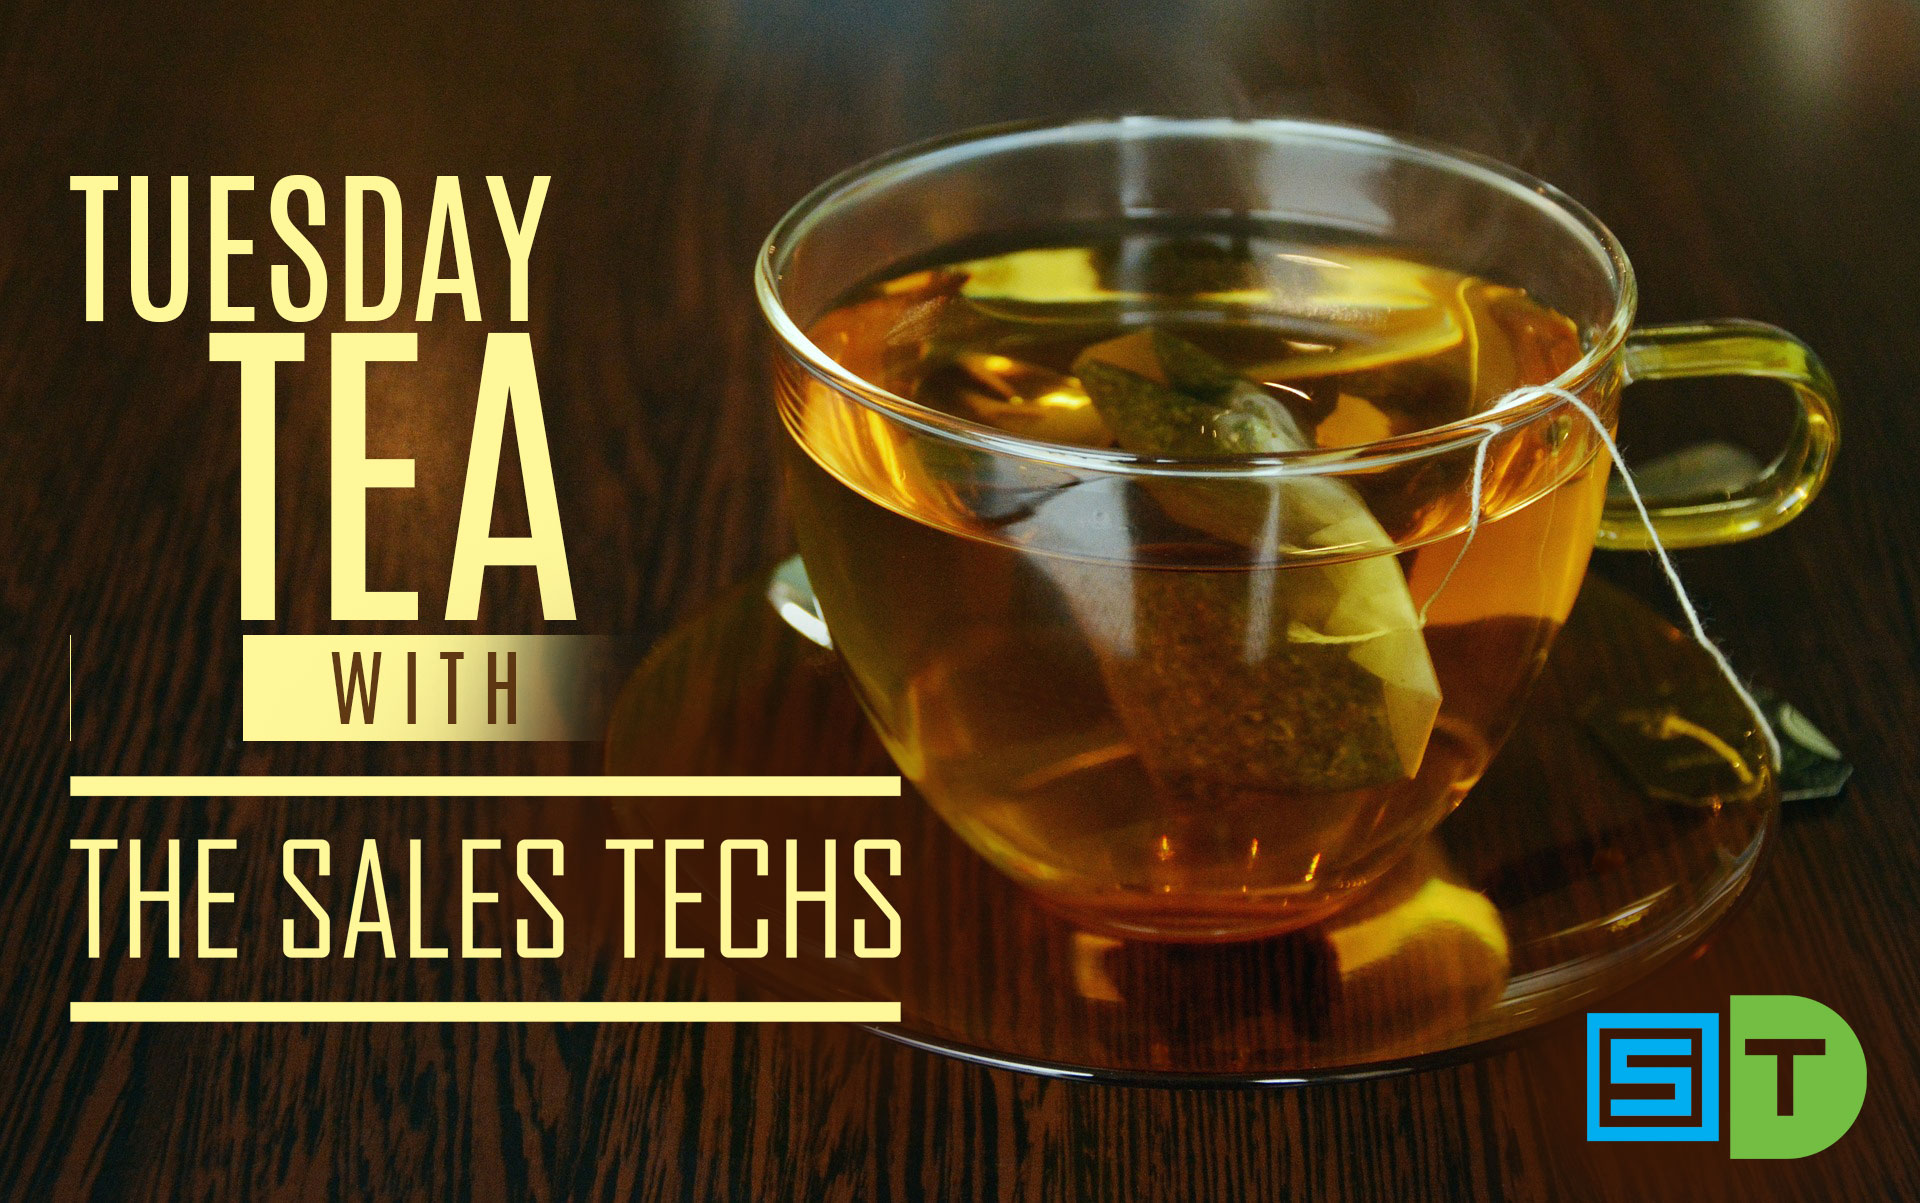 Tuesday Tea with Sales Techs